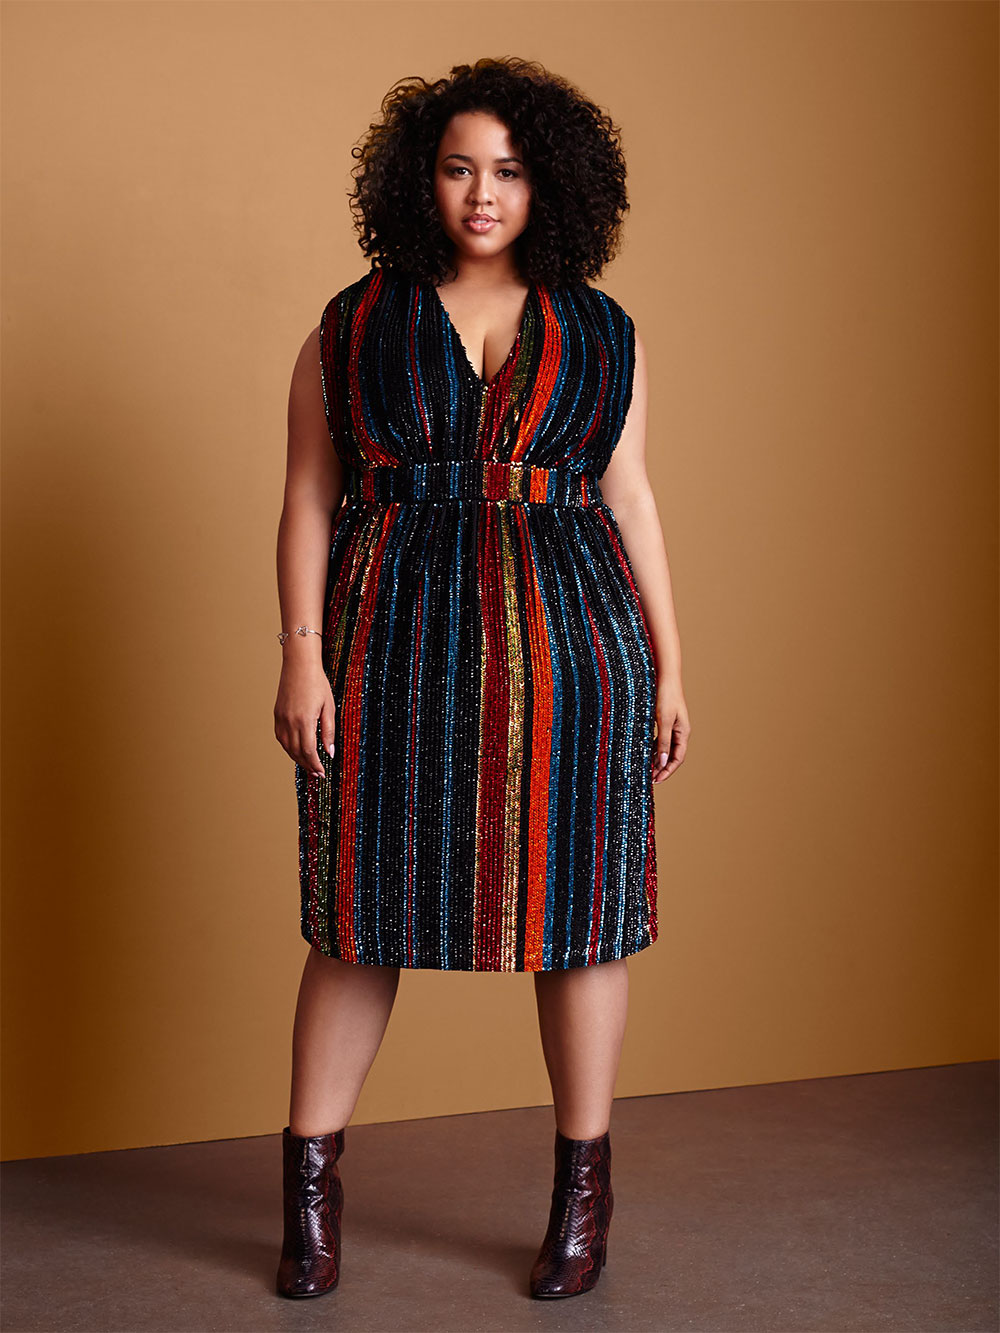 Gabi Fresh for ASOS Curve's FW15 Collection - BellaNaija - August2015 (9)